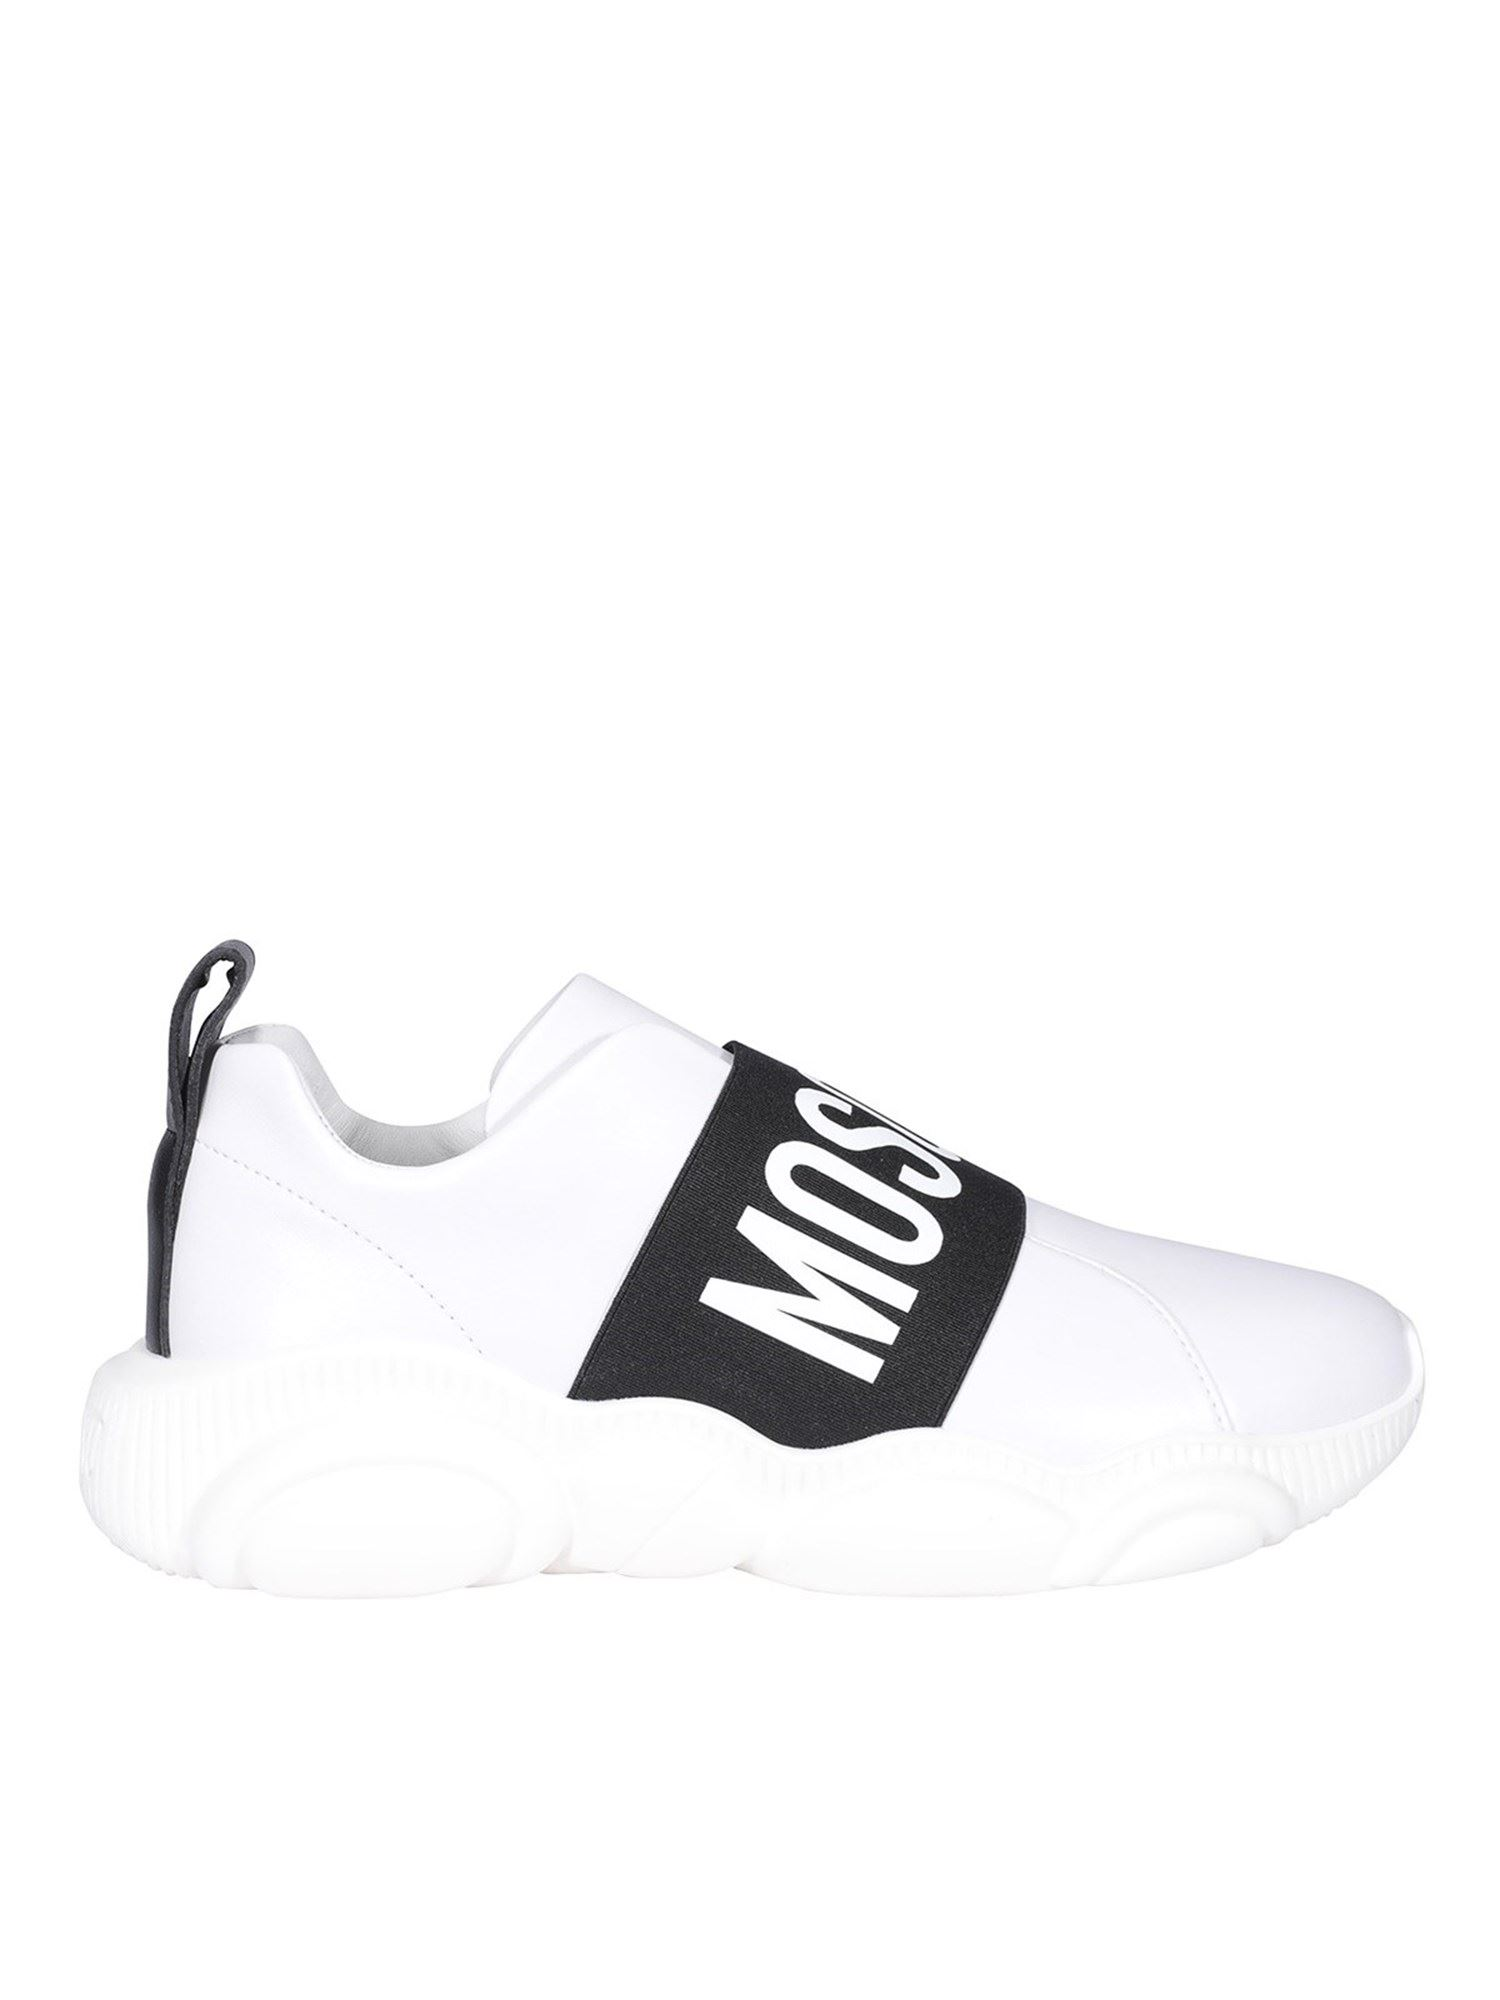 Moschino Leathers CONTRASTING STRIPE WHITE SNEAKERS